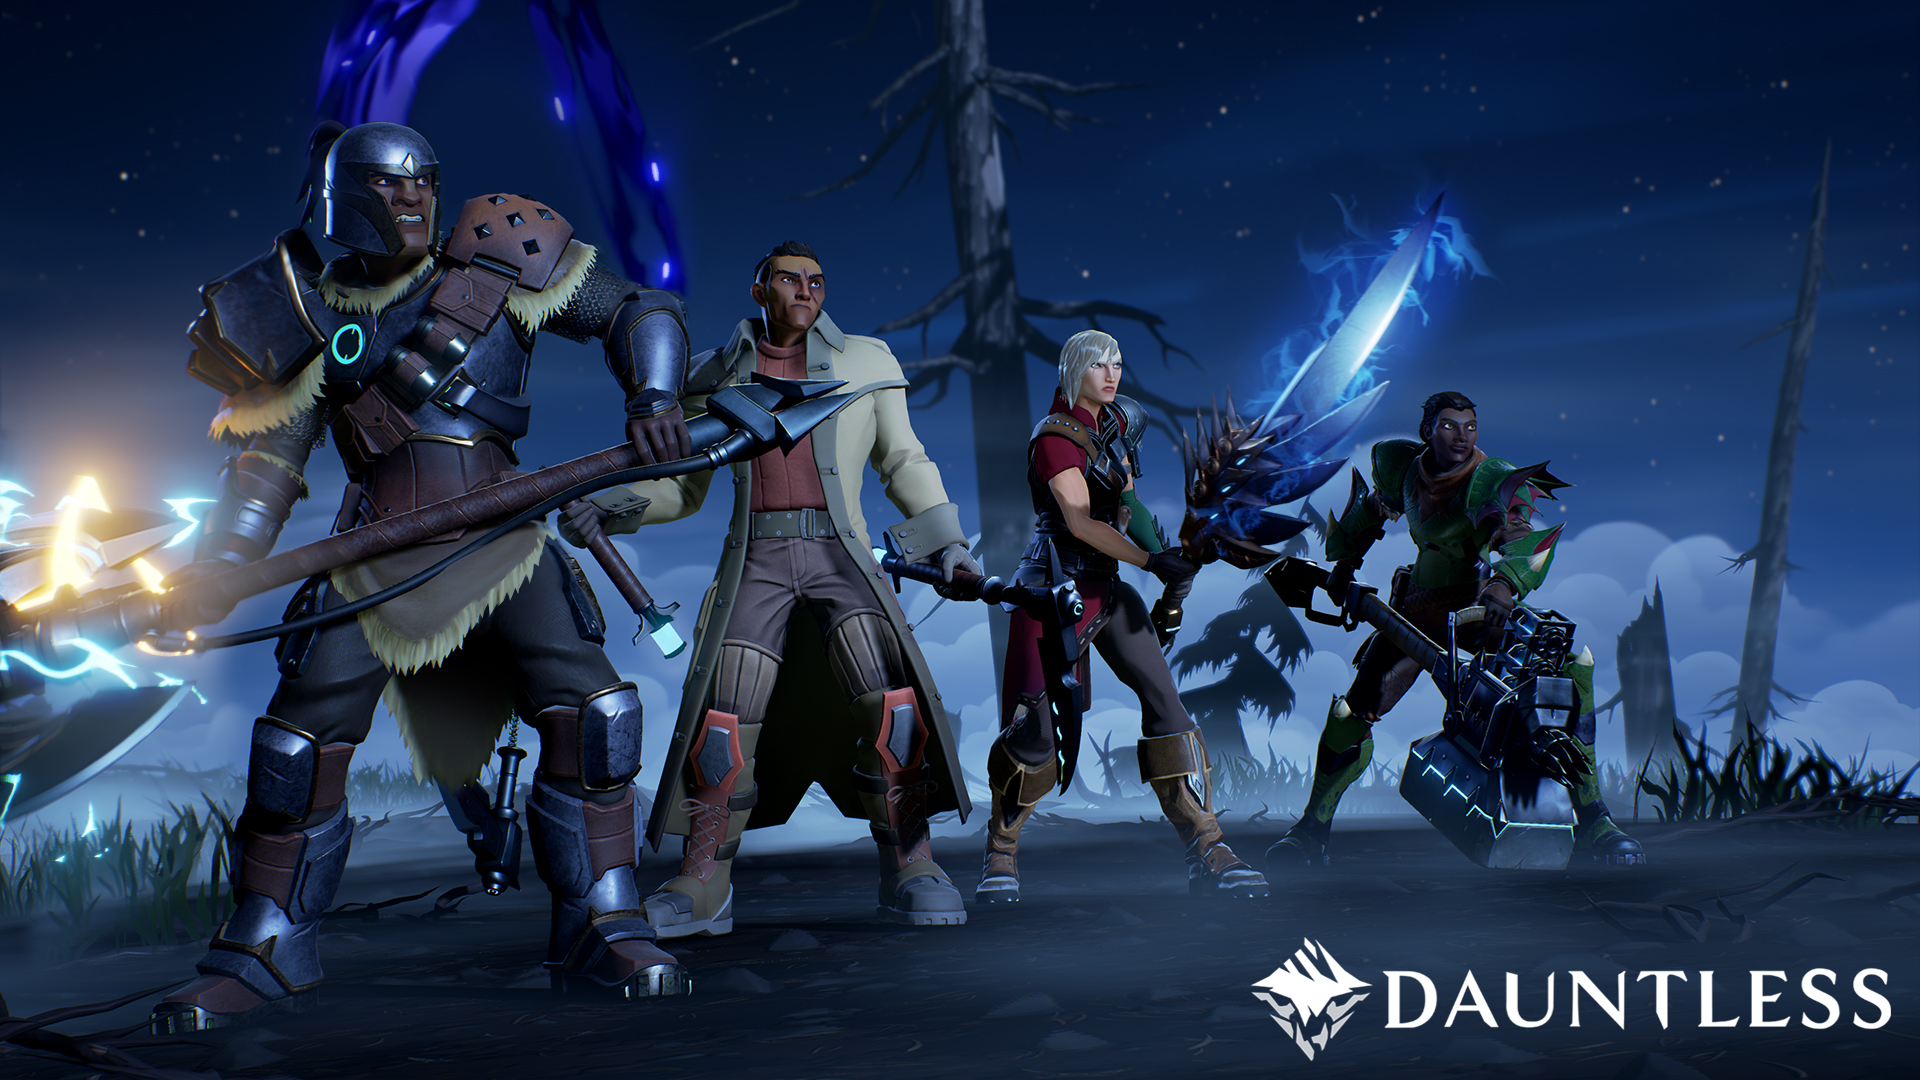 Image result for Dauntless characters armor